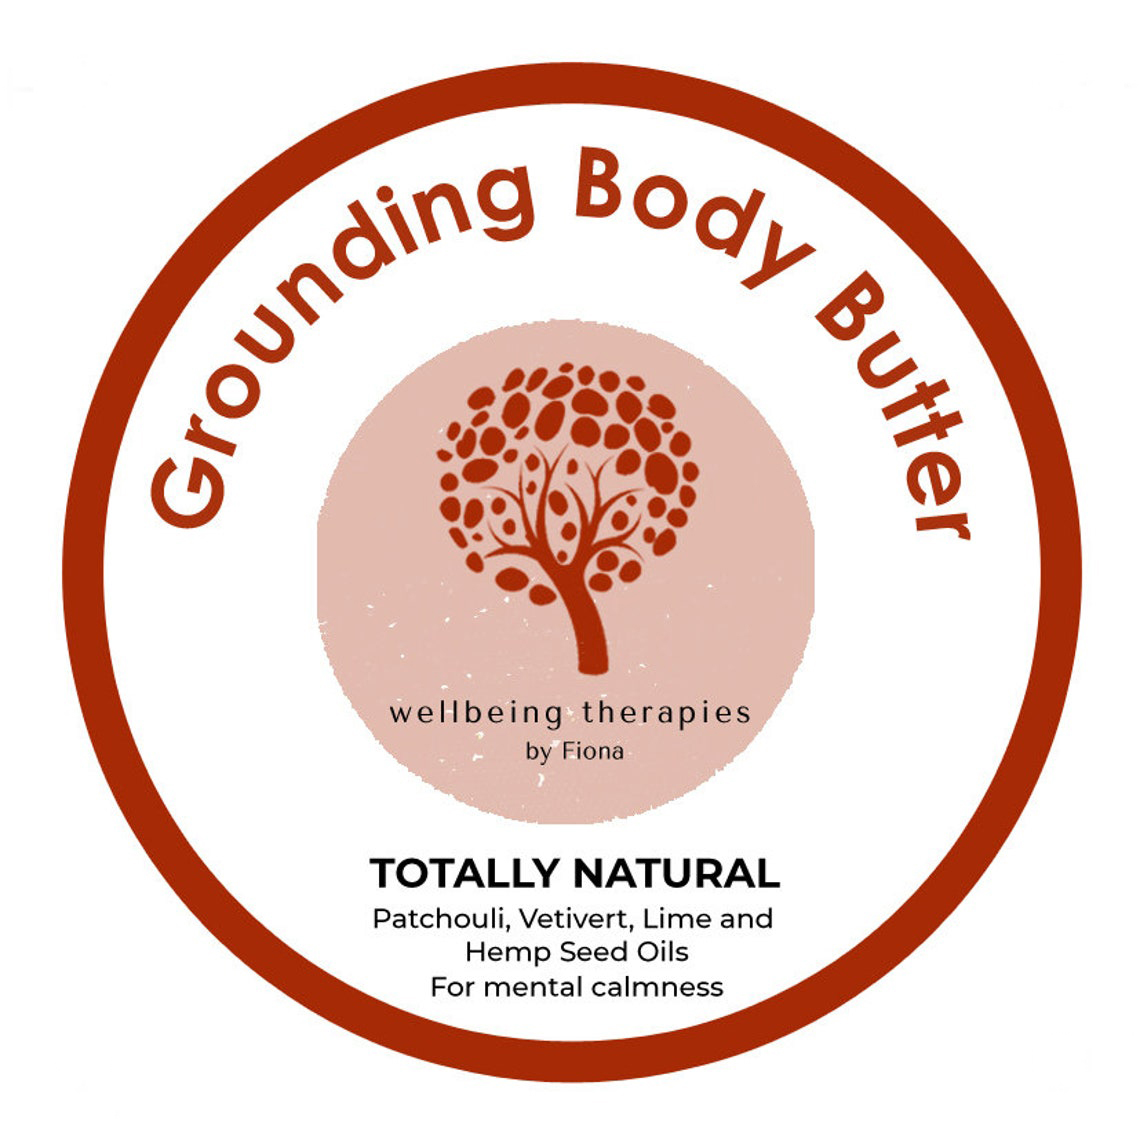 Grounding Body Butter image